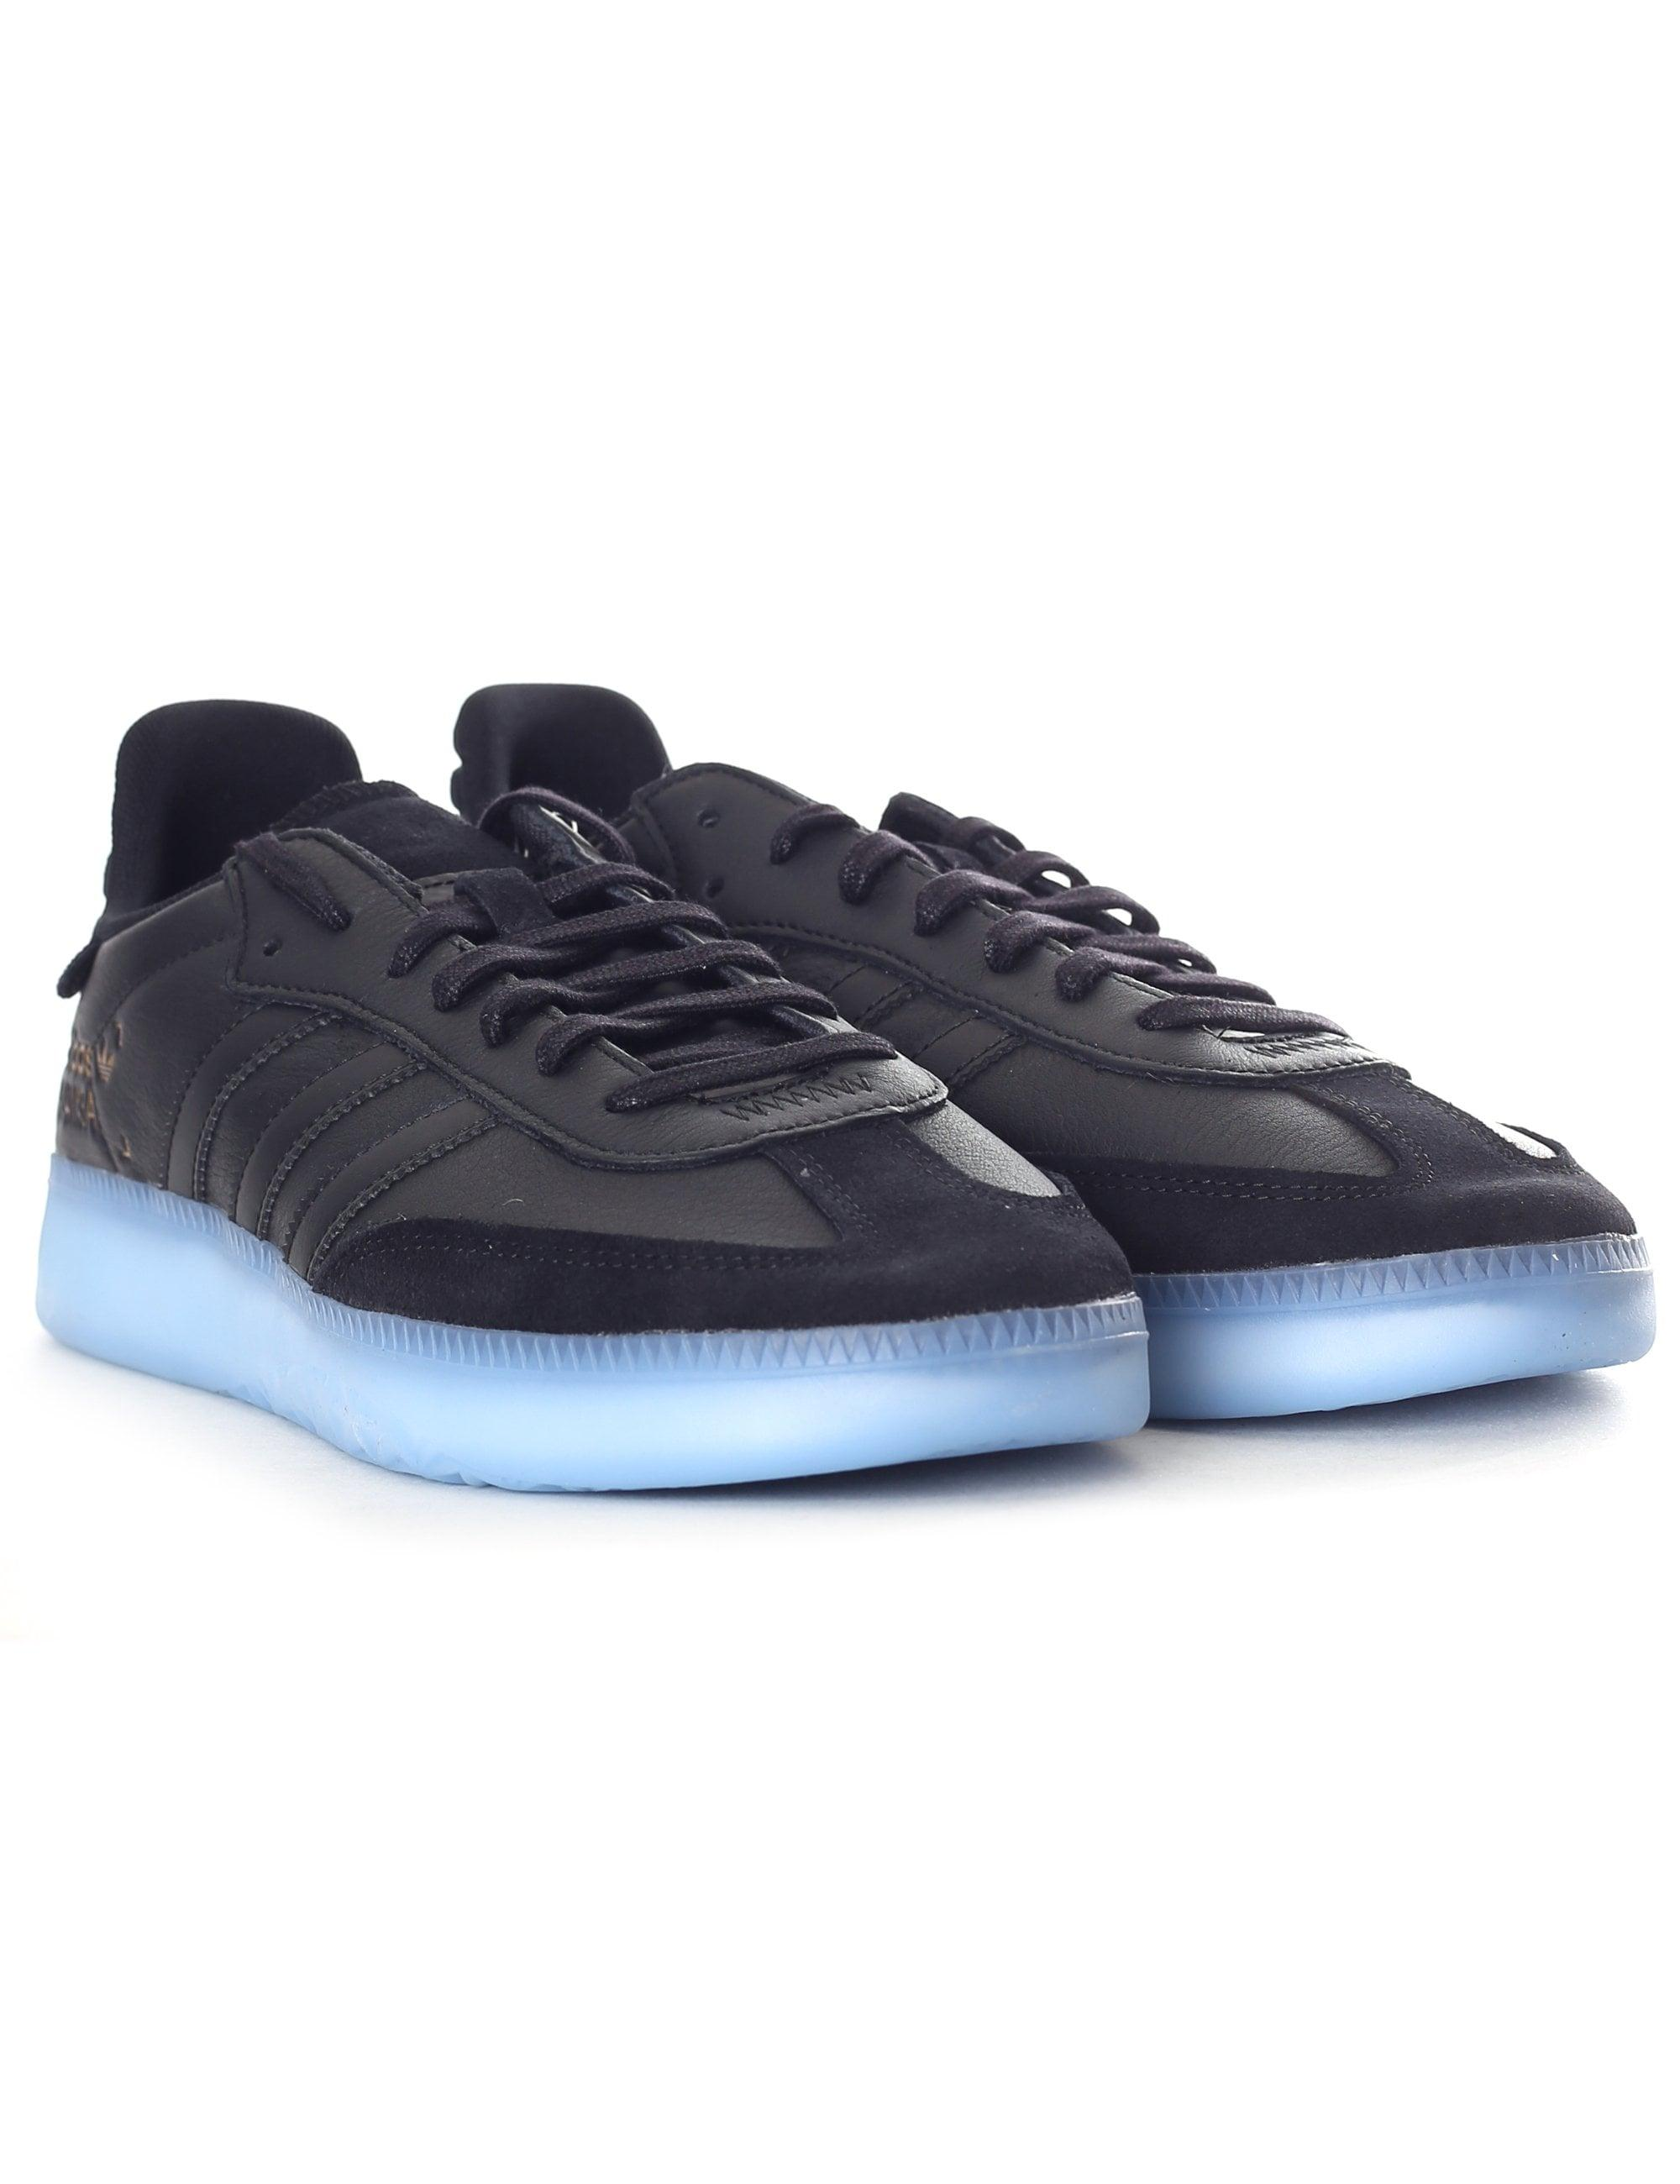 official photos f14b1 d15f9 Adidas Samba Rm Trainers in Black for Men - Lyst